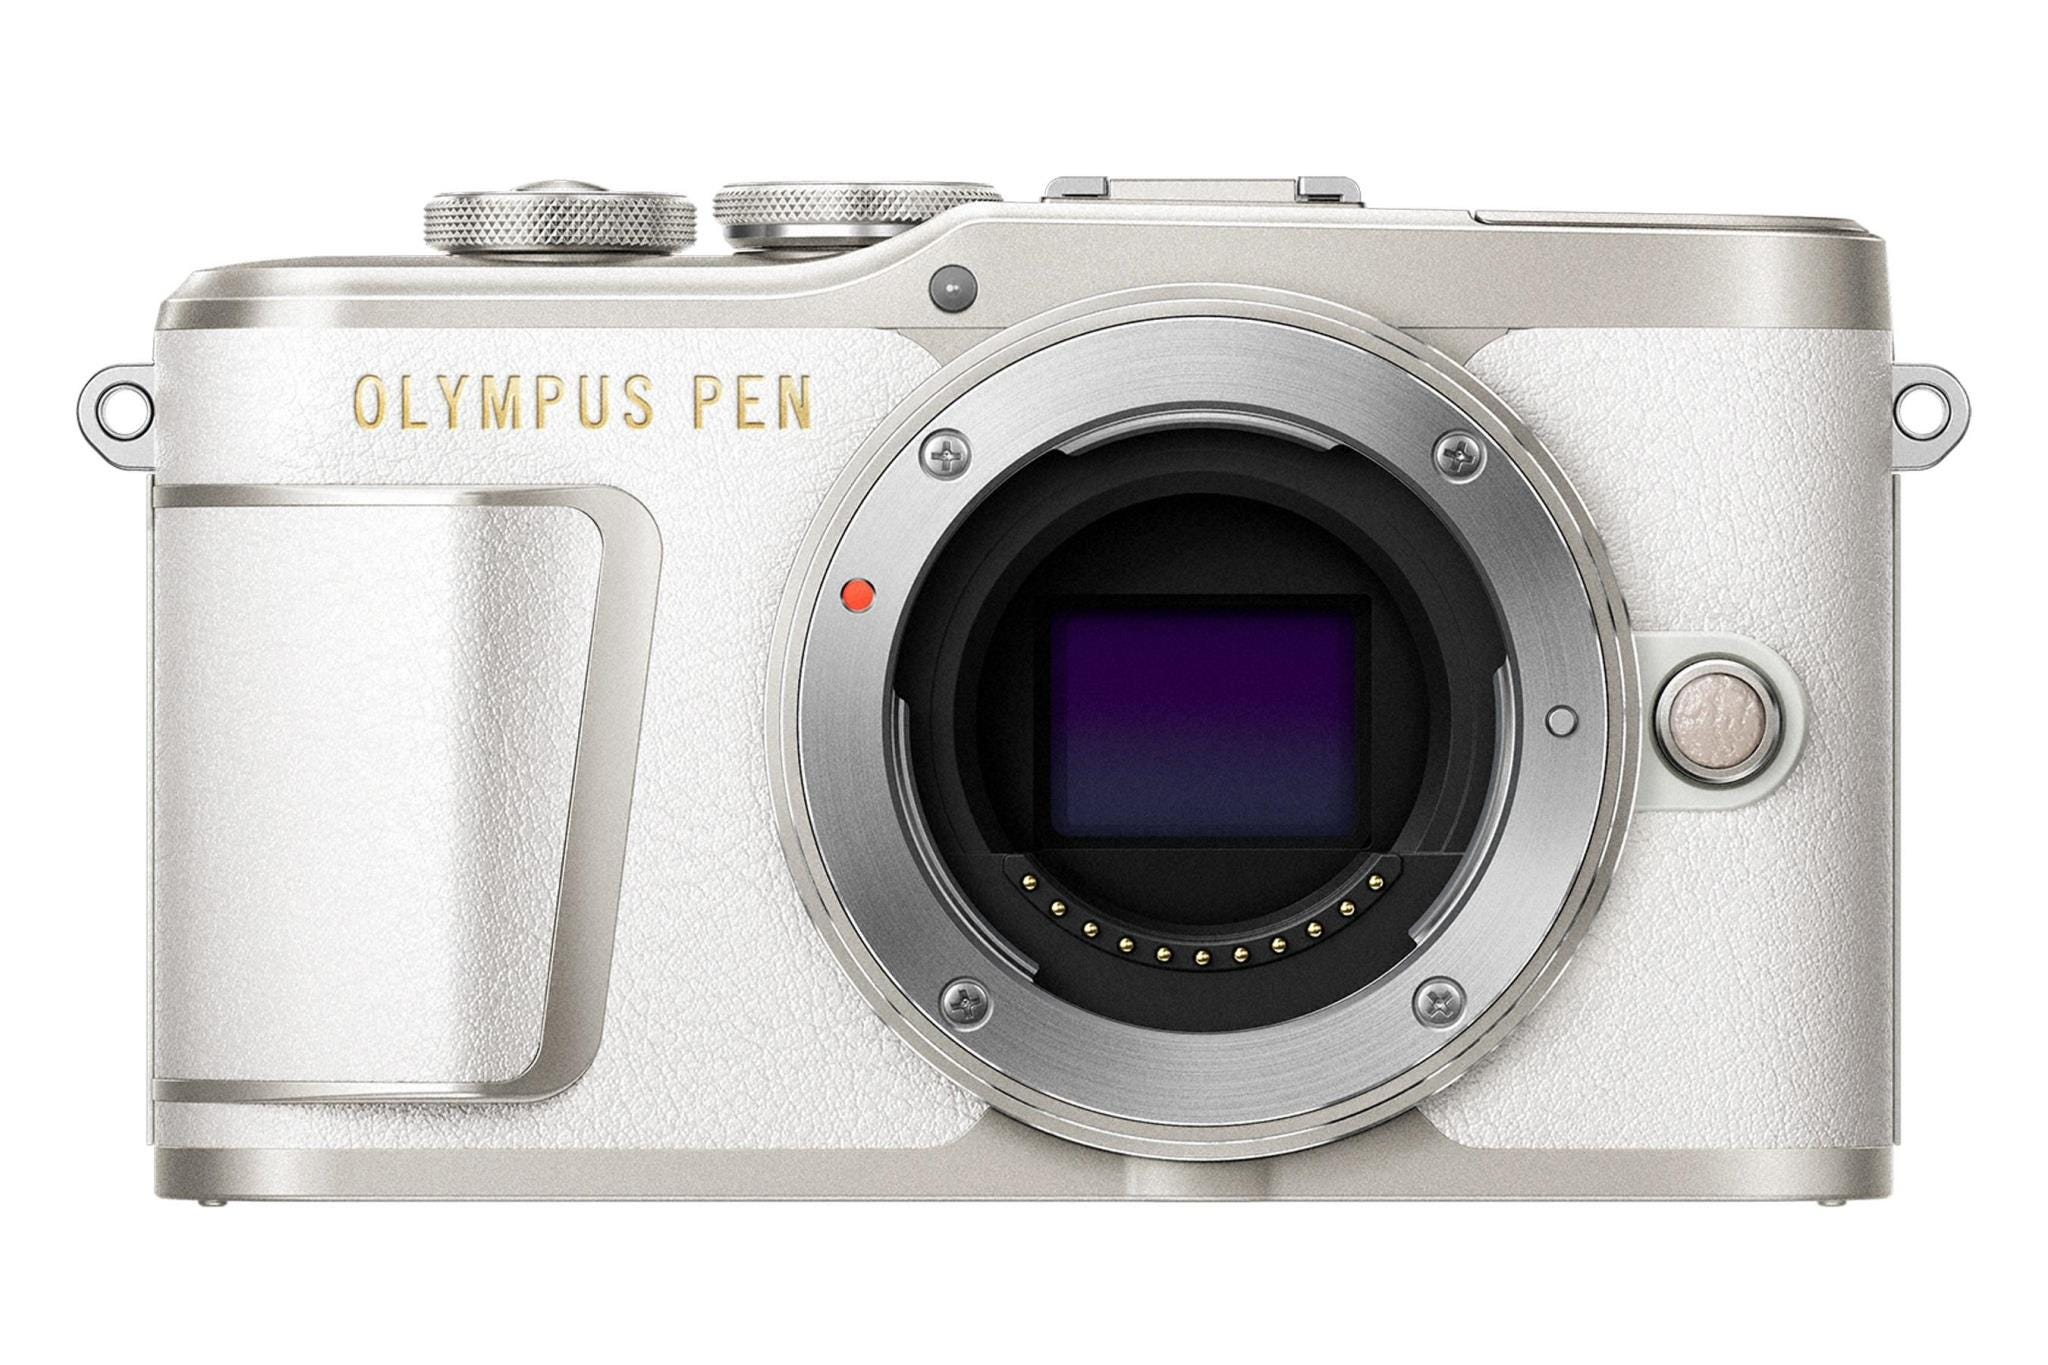 Olympus PEN E-PL9 Compact System Camera Body Only - White